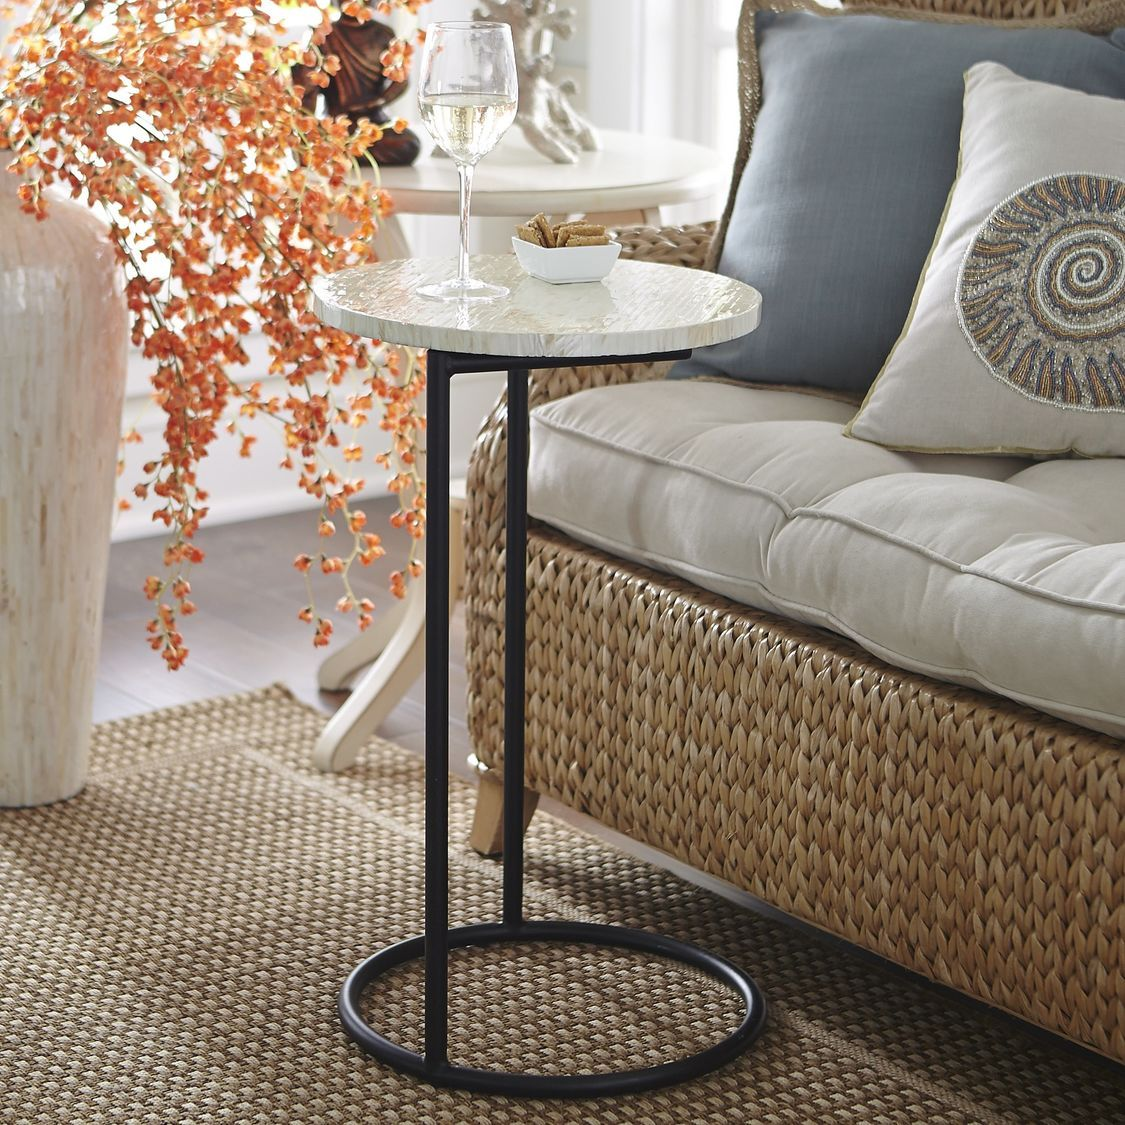 Mother Of Pearl Round C Table Marble Side Tables C Table Table